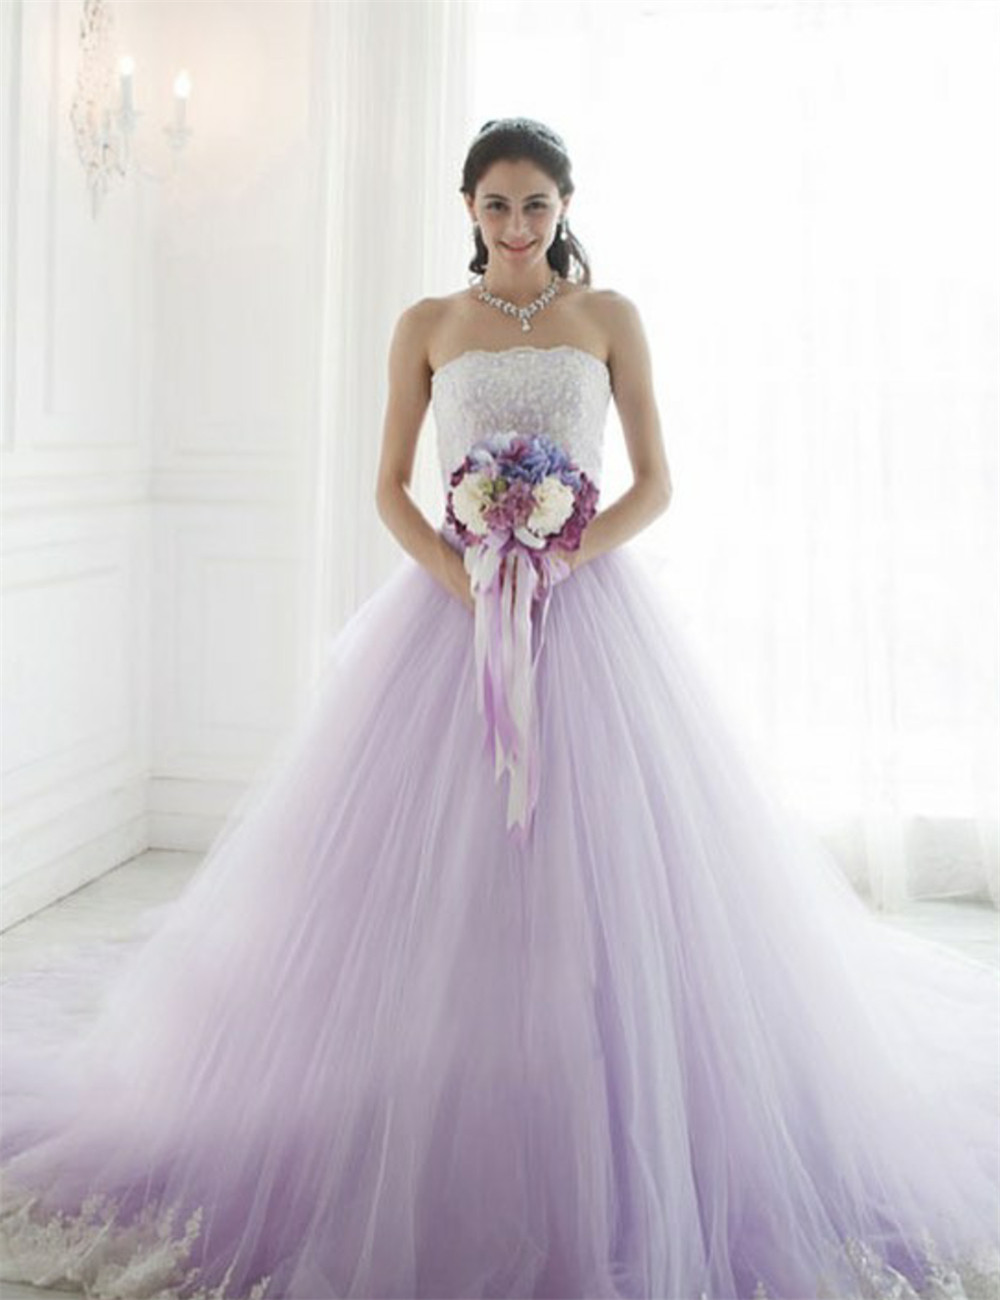 Cute Light Purple Strapless Crystal Beaded Lace Lique A Line Zipper Soft Tulle Wedding Dresses Bridal Gown Fast Shipping In From